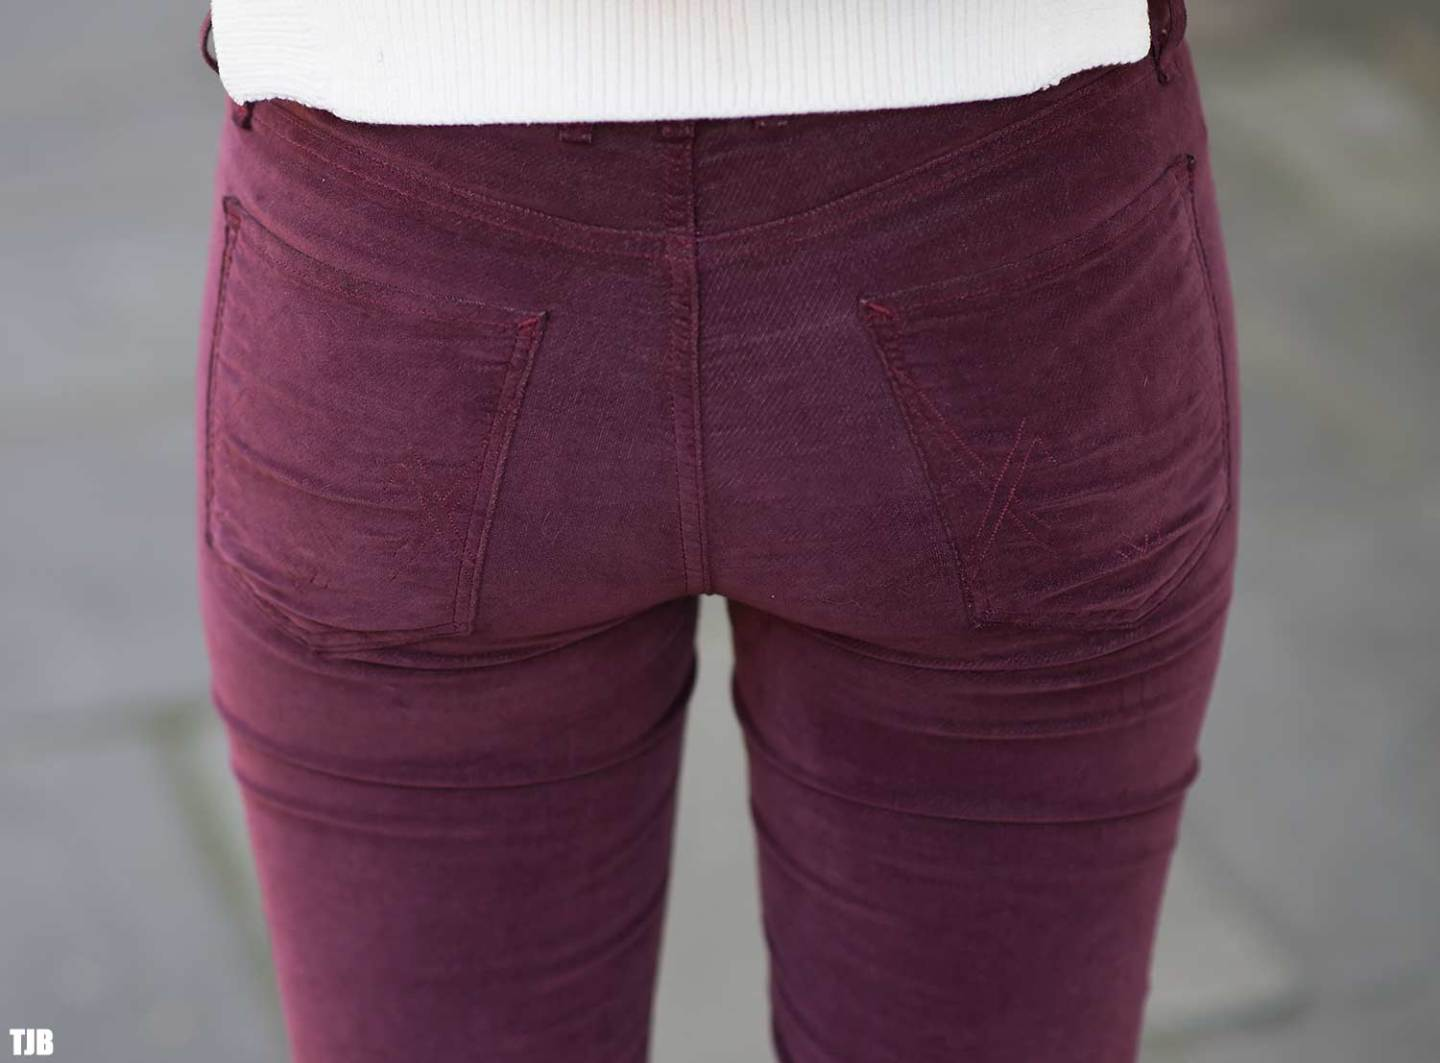 mcguire-denim-newton-exposed-button-skinny-pants-in-pinot-review-9